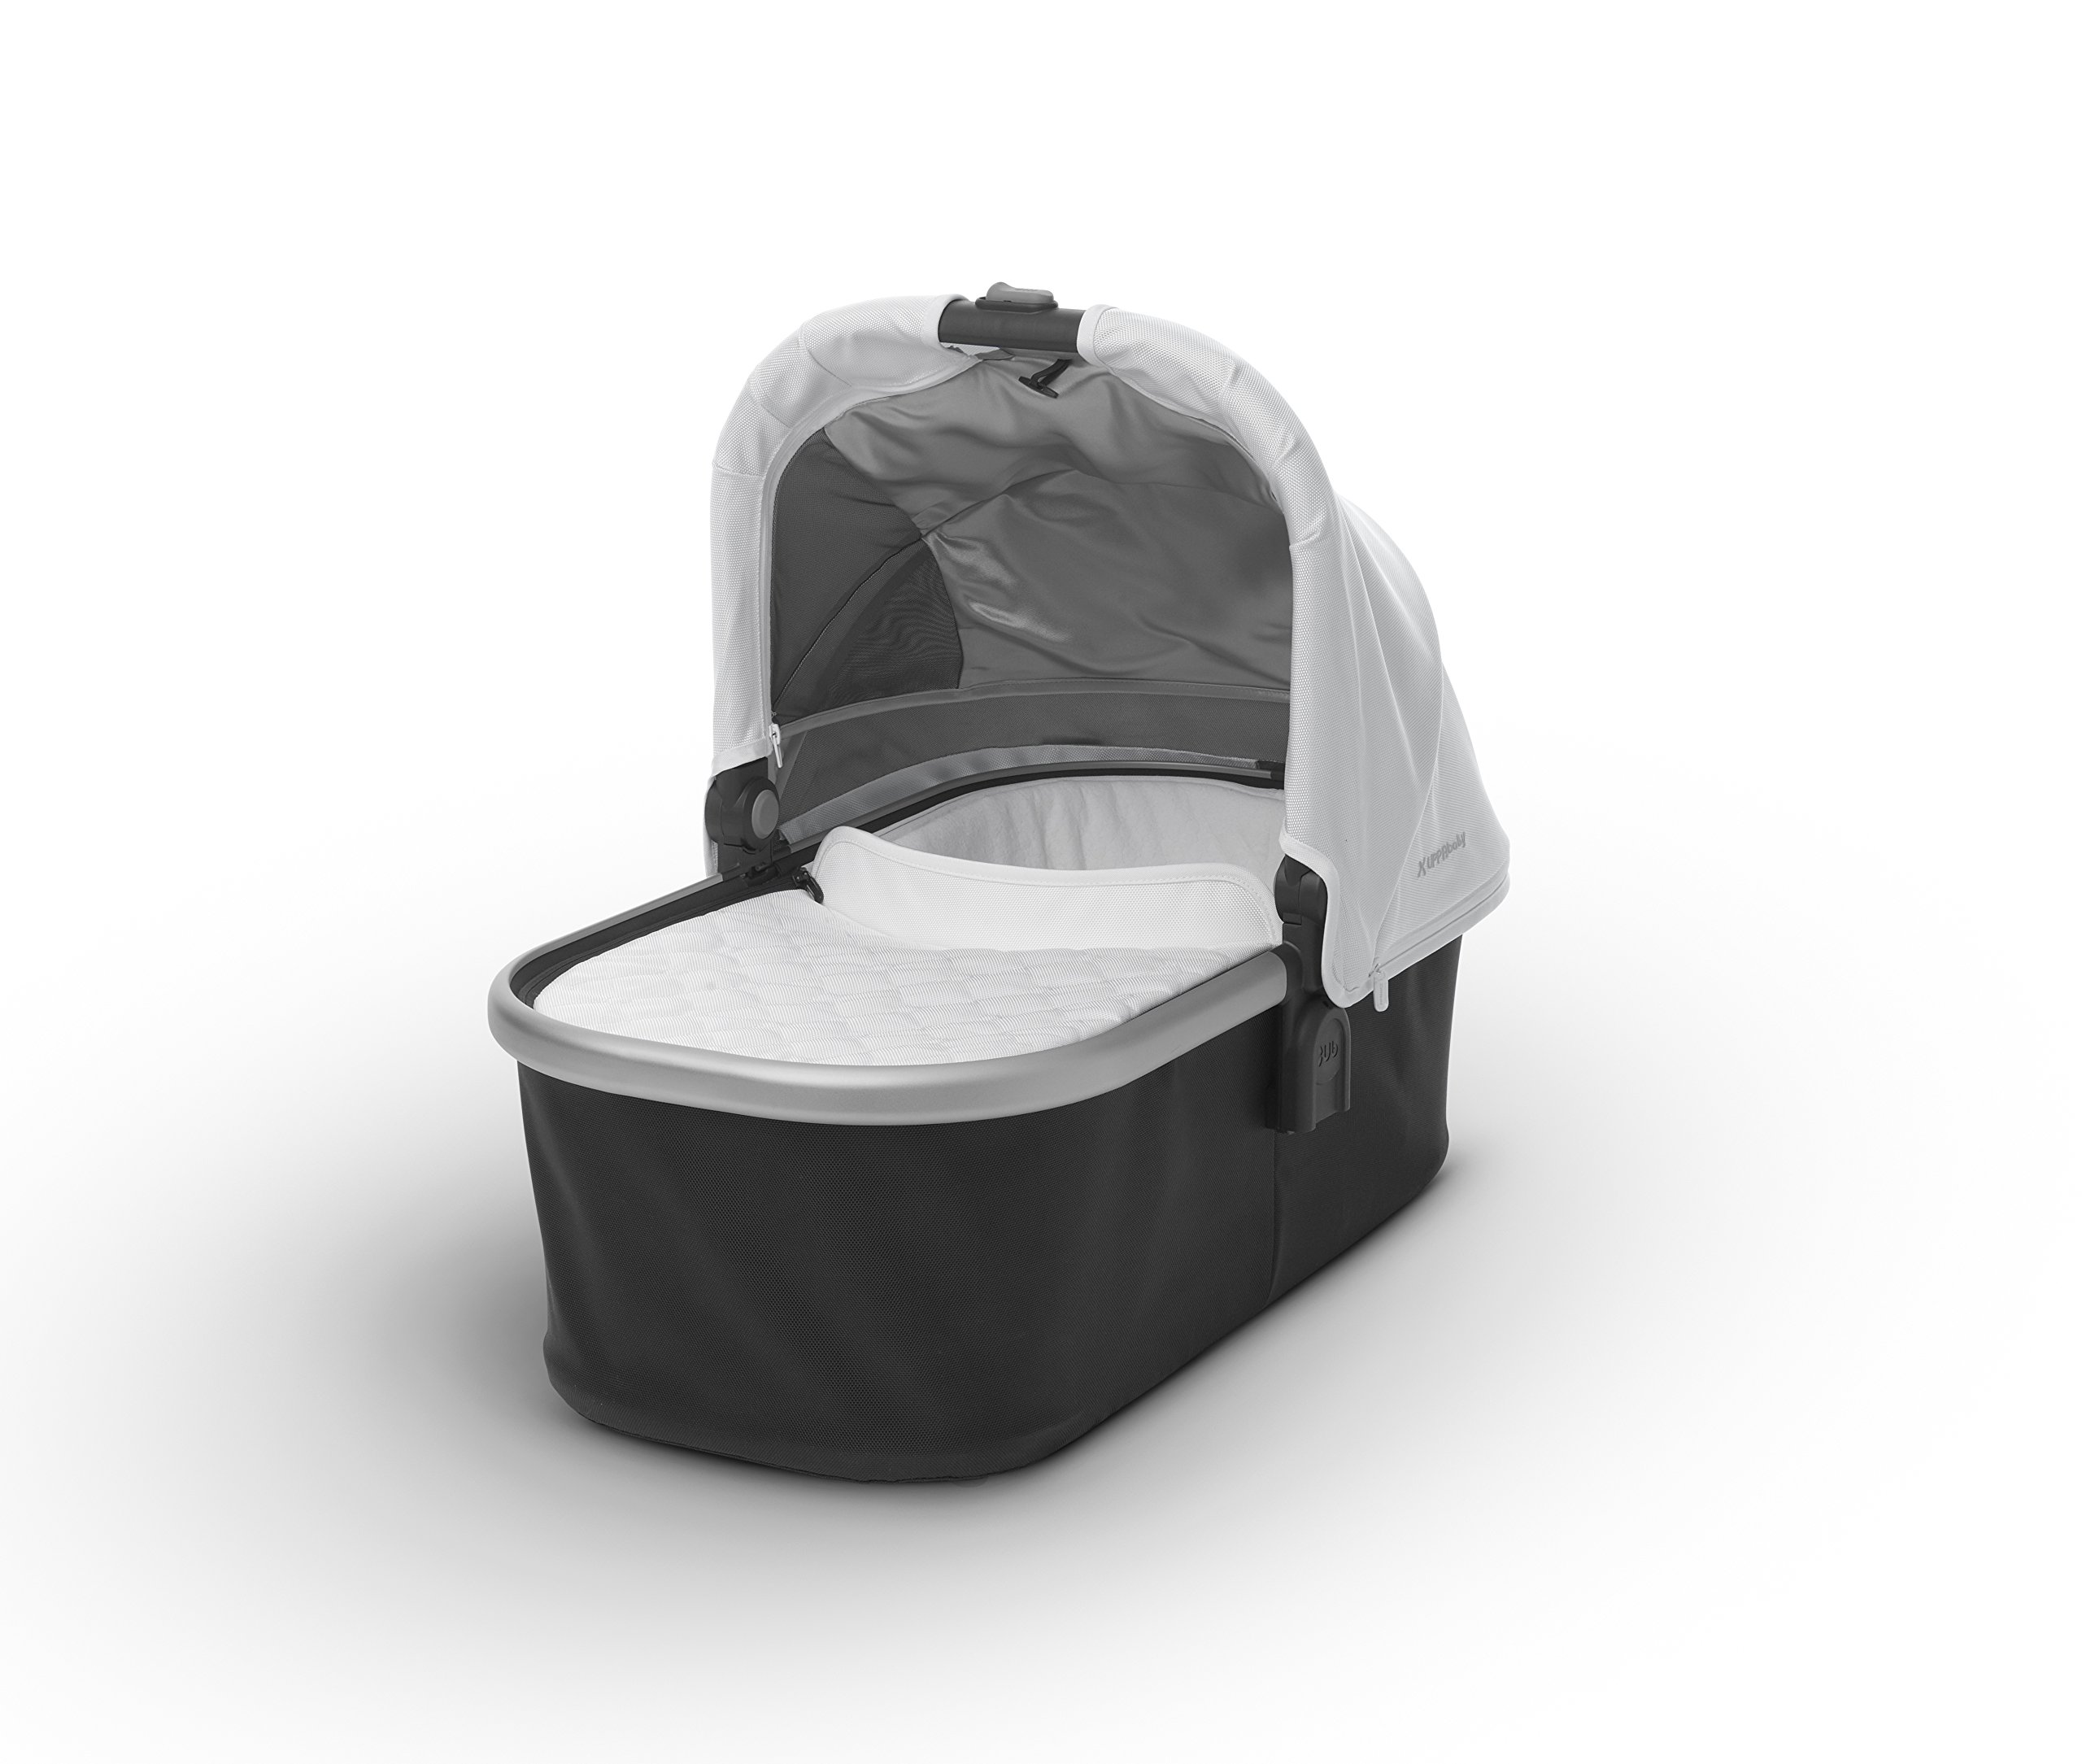 2018 UPPAbaby Bassinet - Loic (White/Silver)